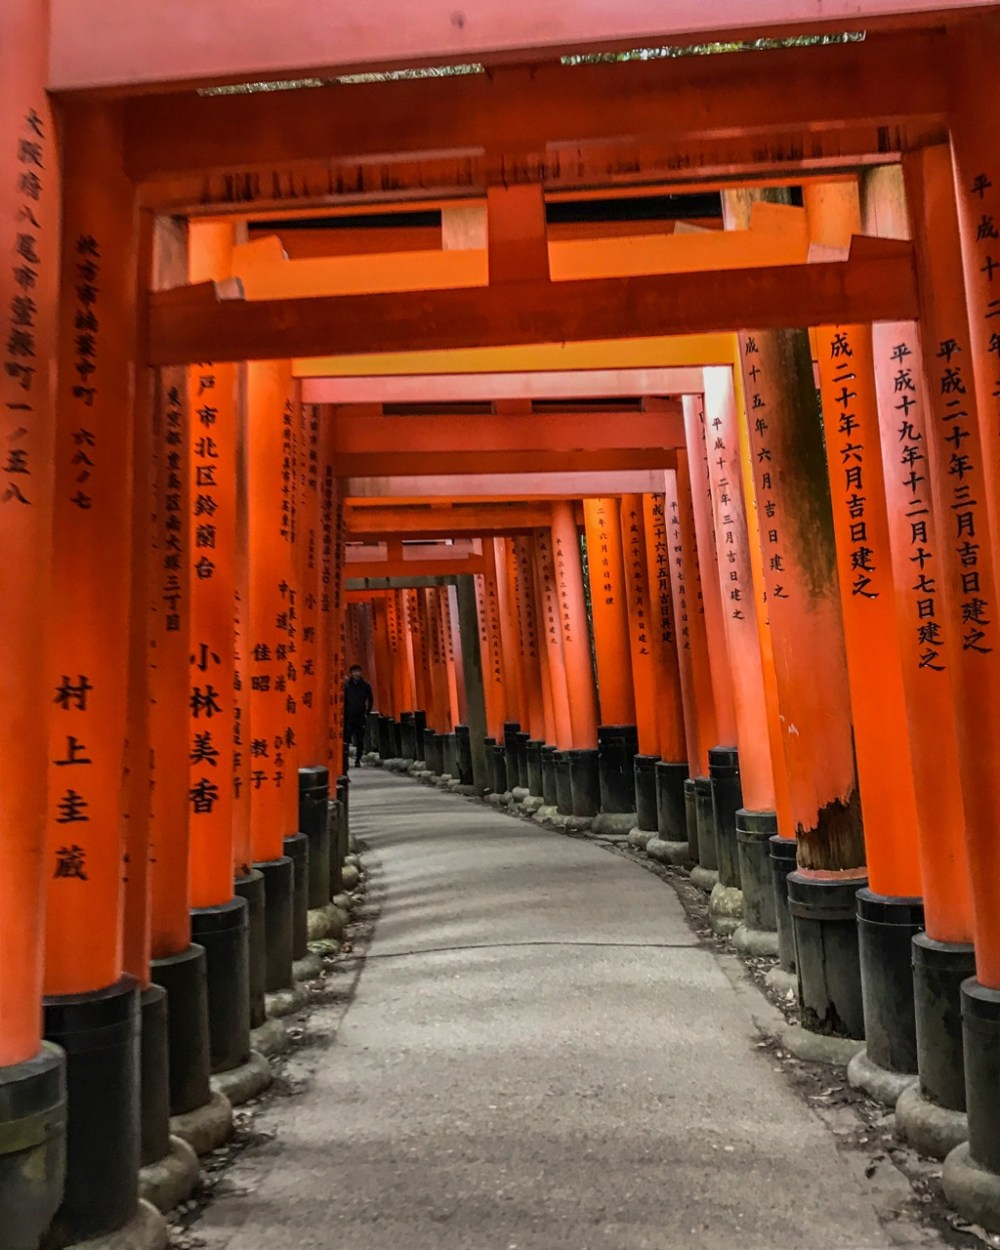 Fushimi Inari is a collection of shrines in Japan